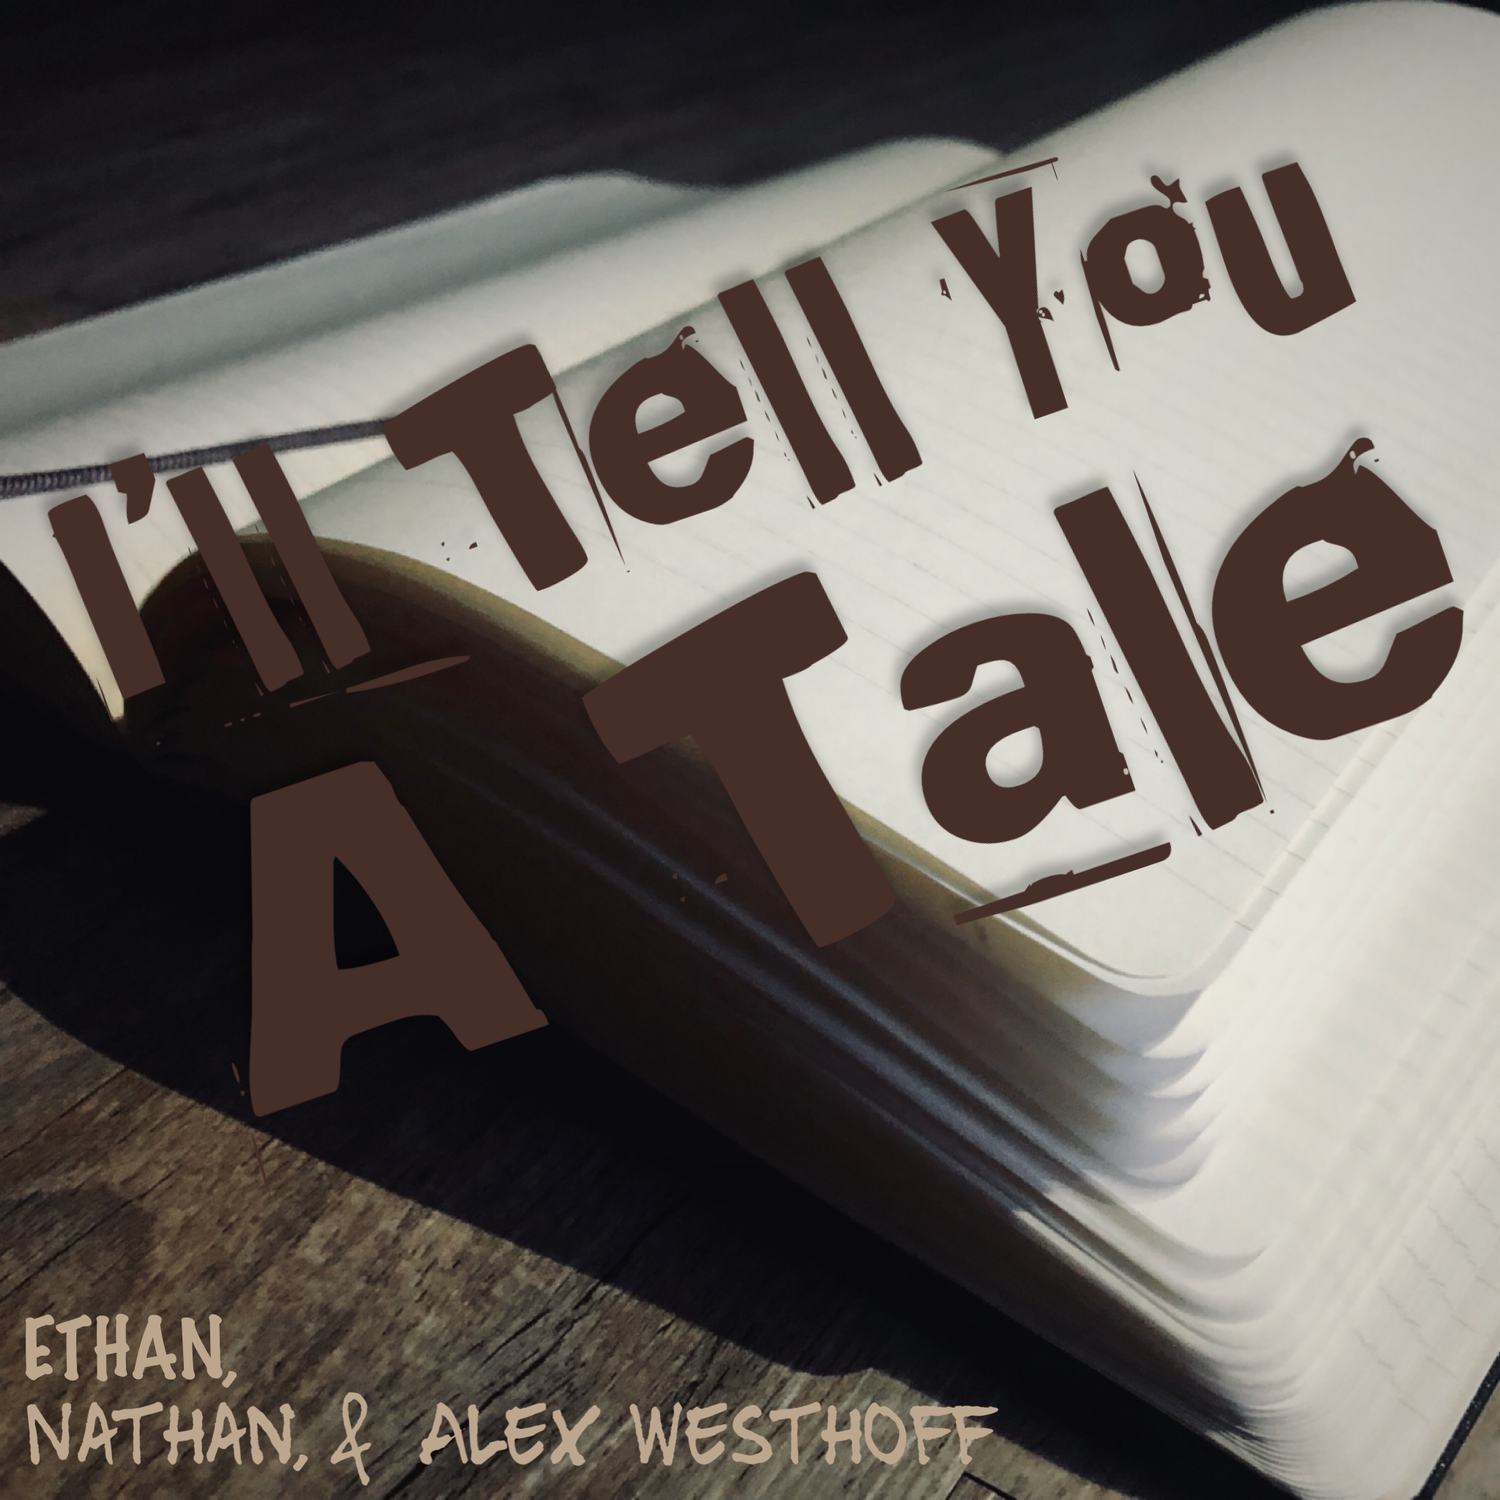 I'll Tell You A Tale | Listen Free on Castbox